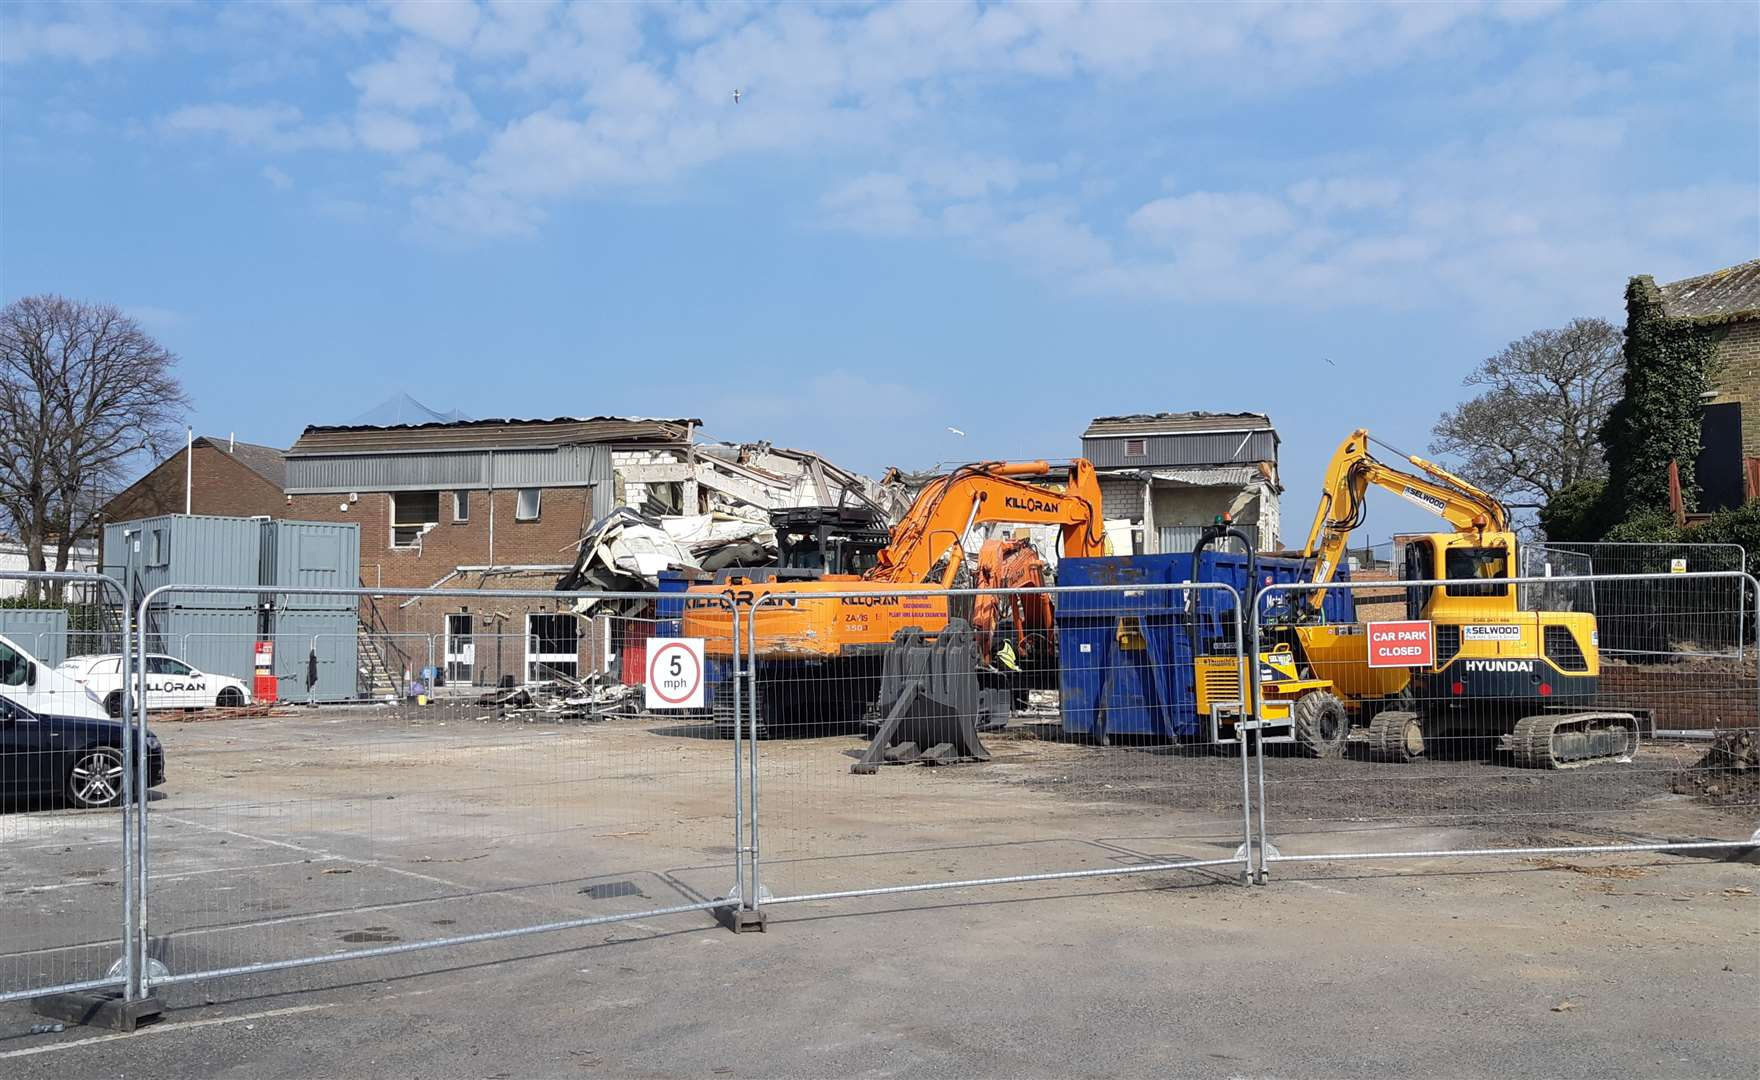 Aldi was forced to stop demolition but have now started work again